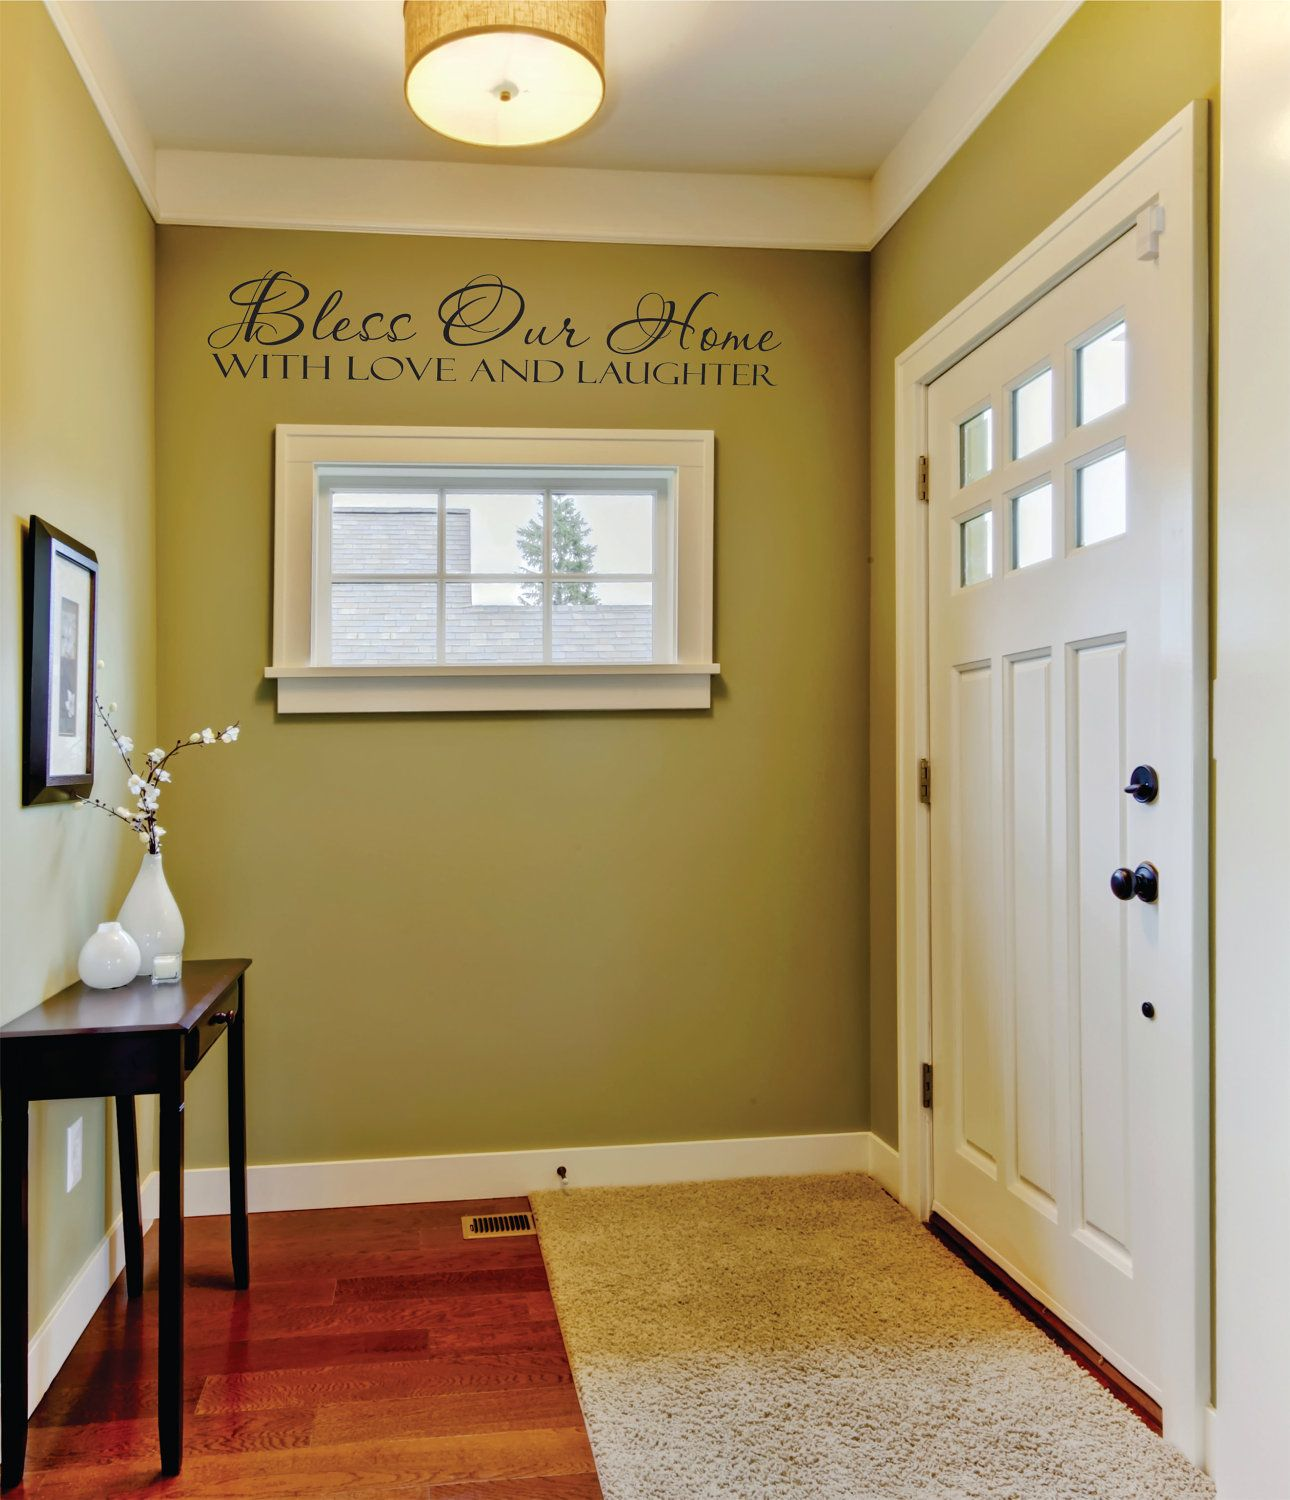 Bless our home with love and laughter vinyl wall decal sticker ...